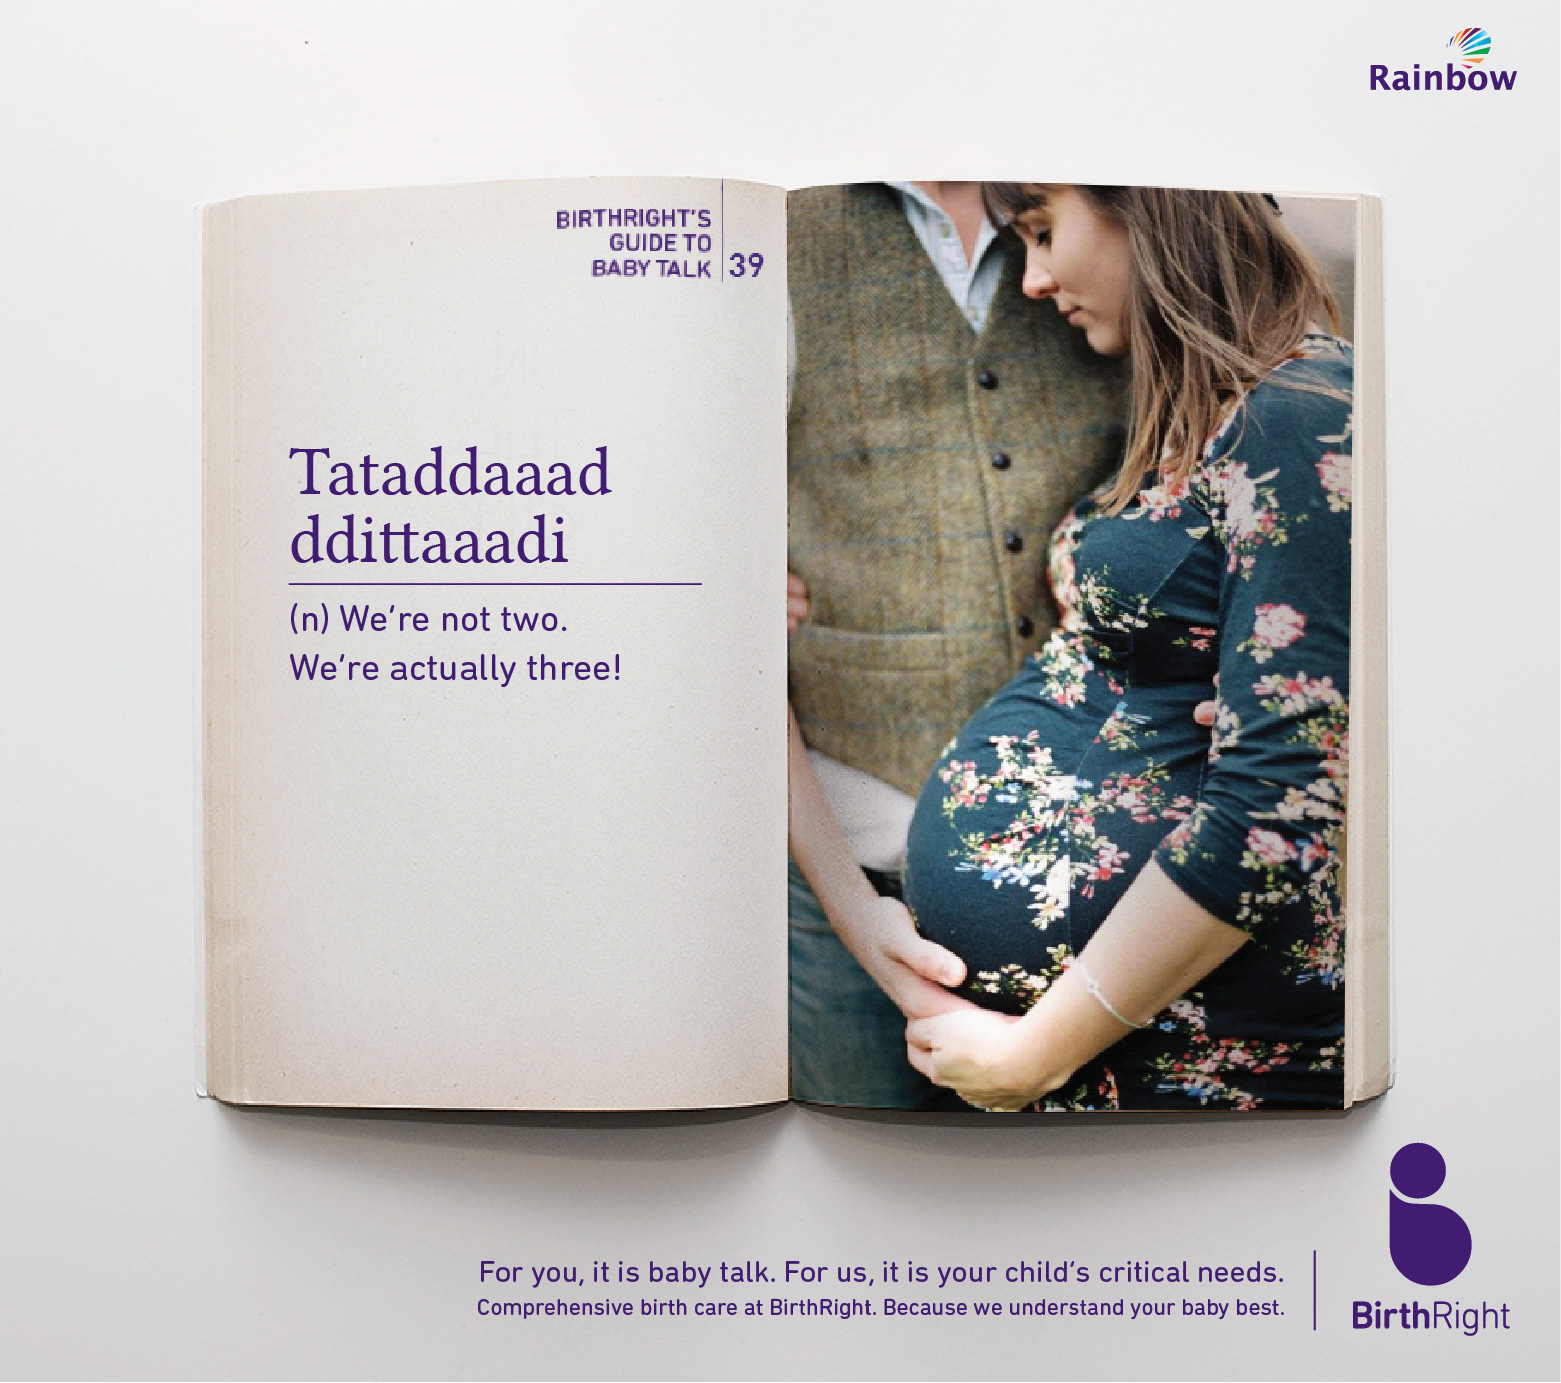 a446ffe94577 This campaign I visualised as a dictionary of baby talk. A doctor s guide  to baby talk and how a good doctor can interpret baby talk and actions to  figure ...